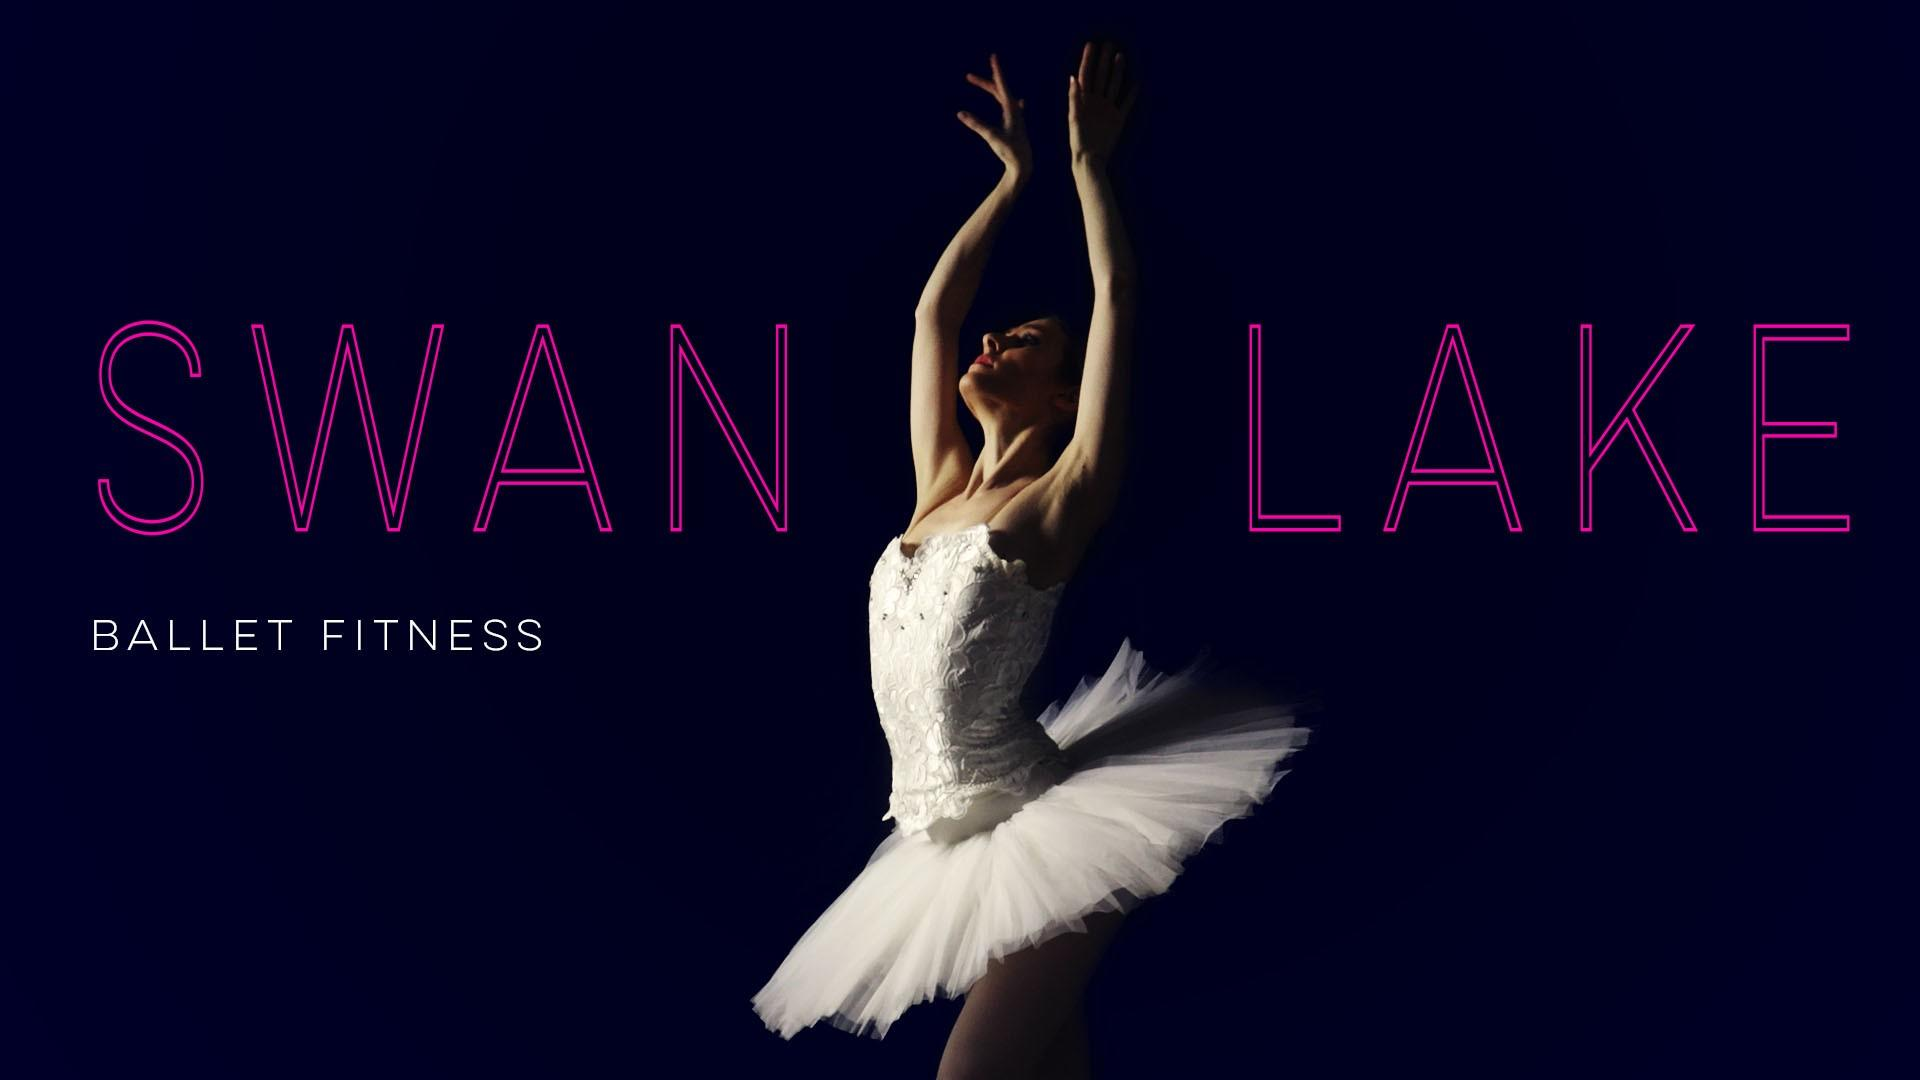 Swan Lake Ballet Fitness Program